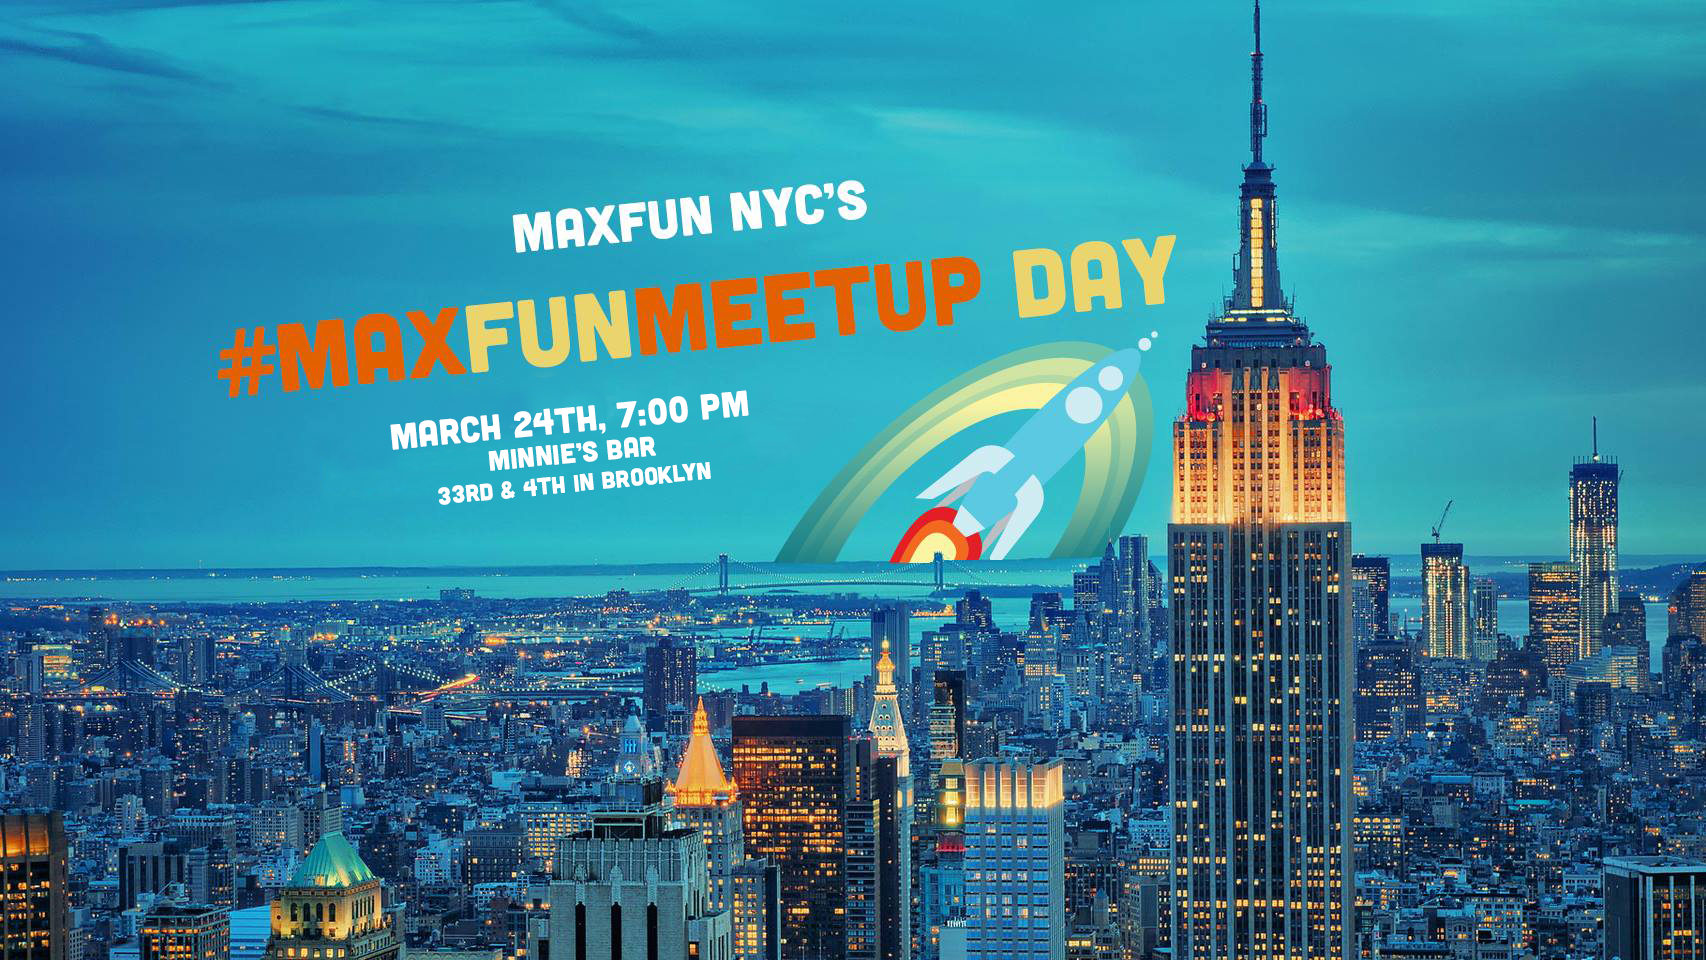 NYC's MaxFunMeetupDay 2020